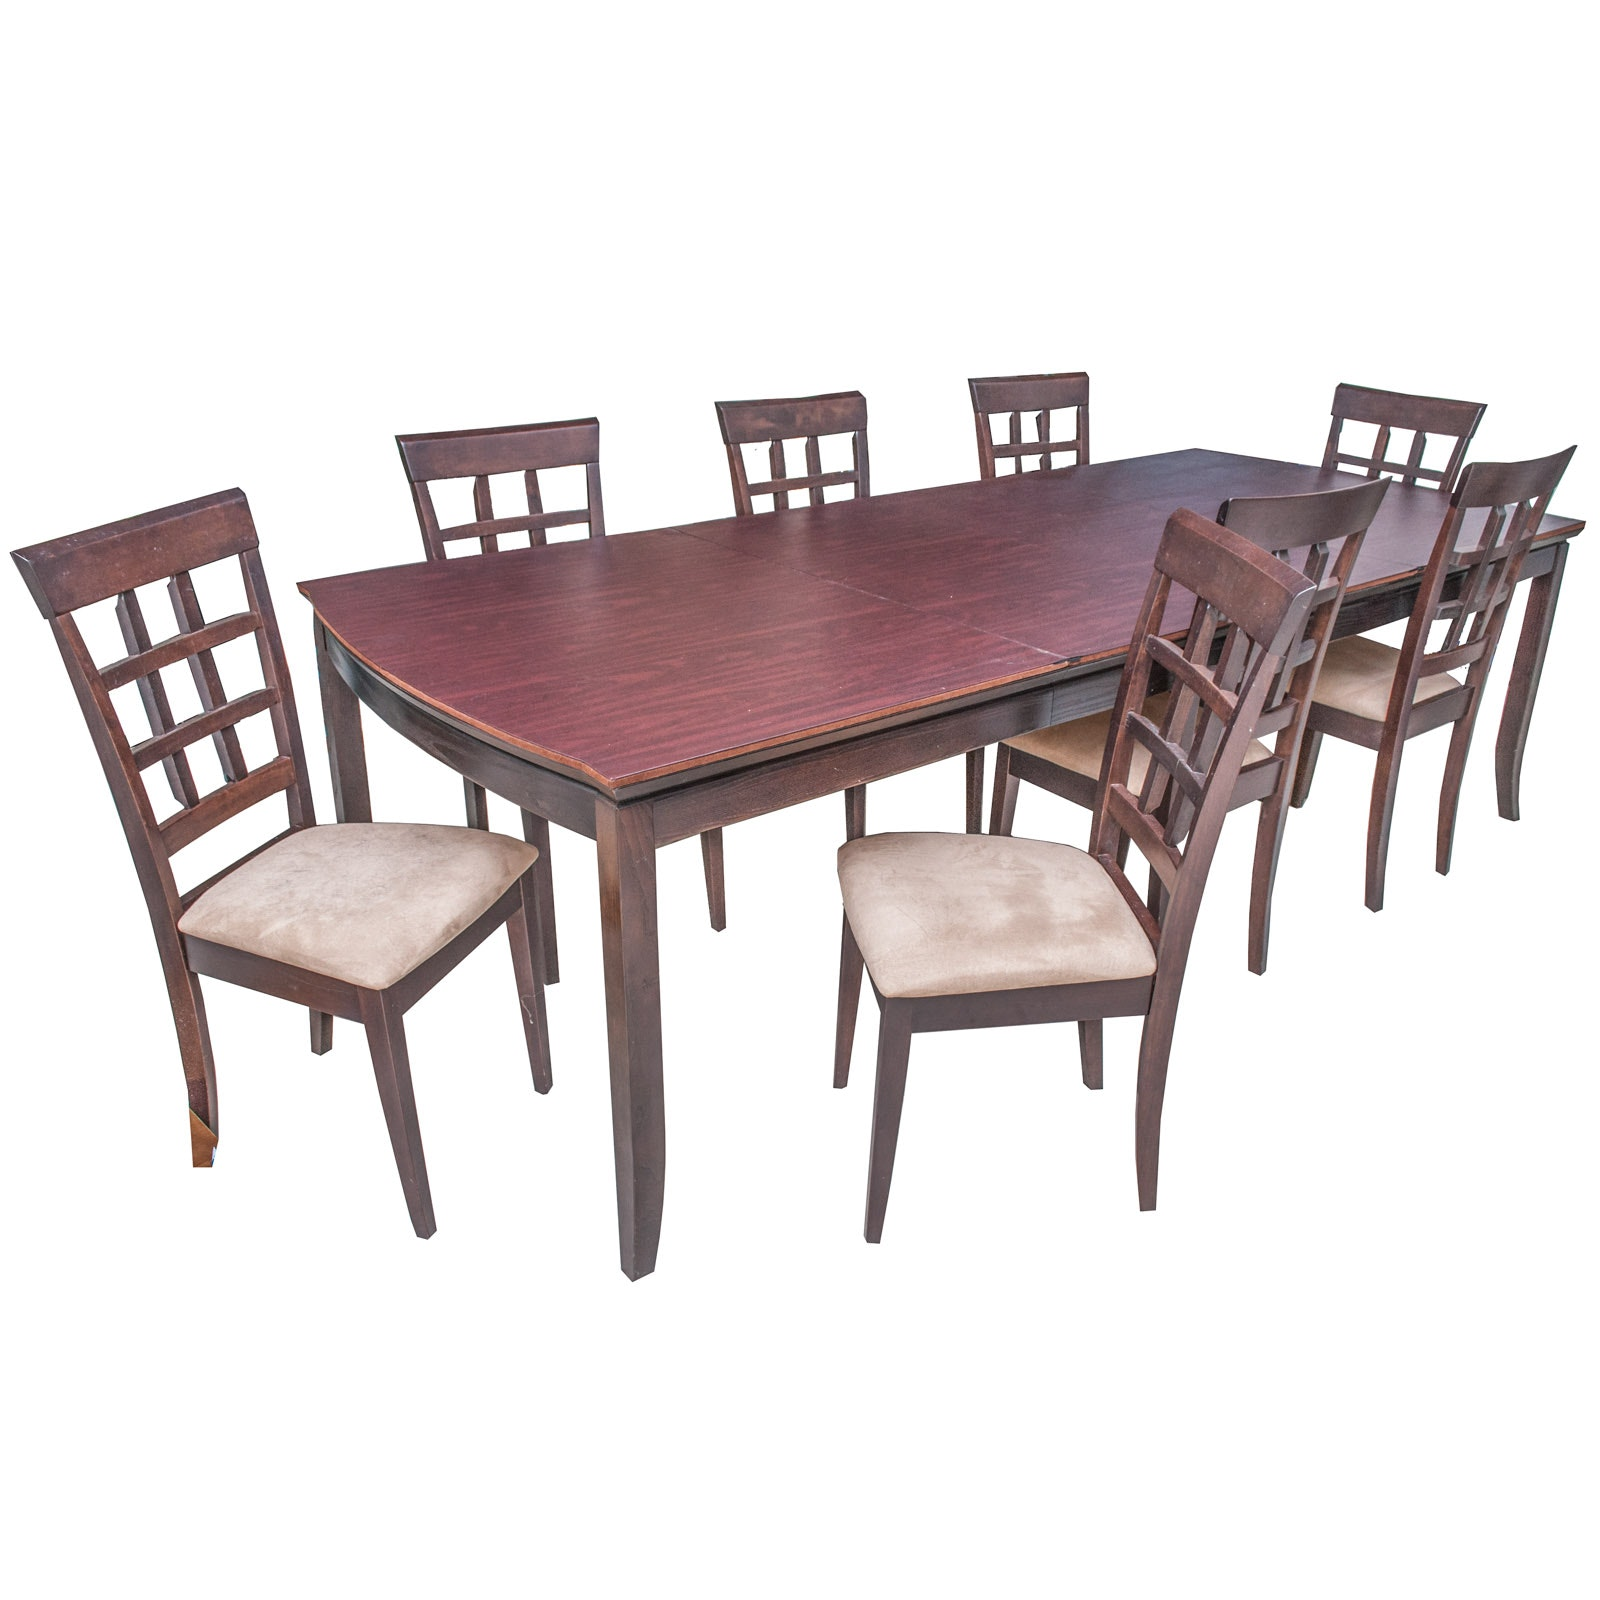 Stanley Furniture Mahogany Finished Dining Table and Chairs